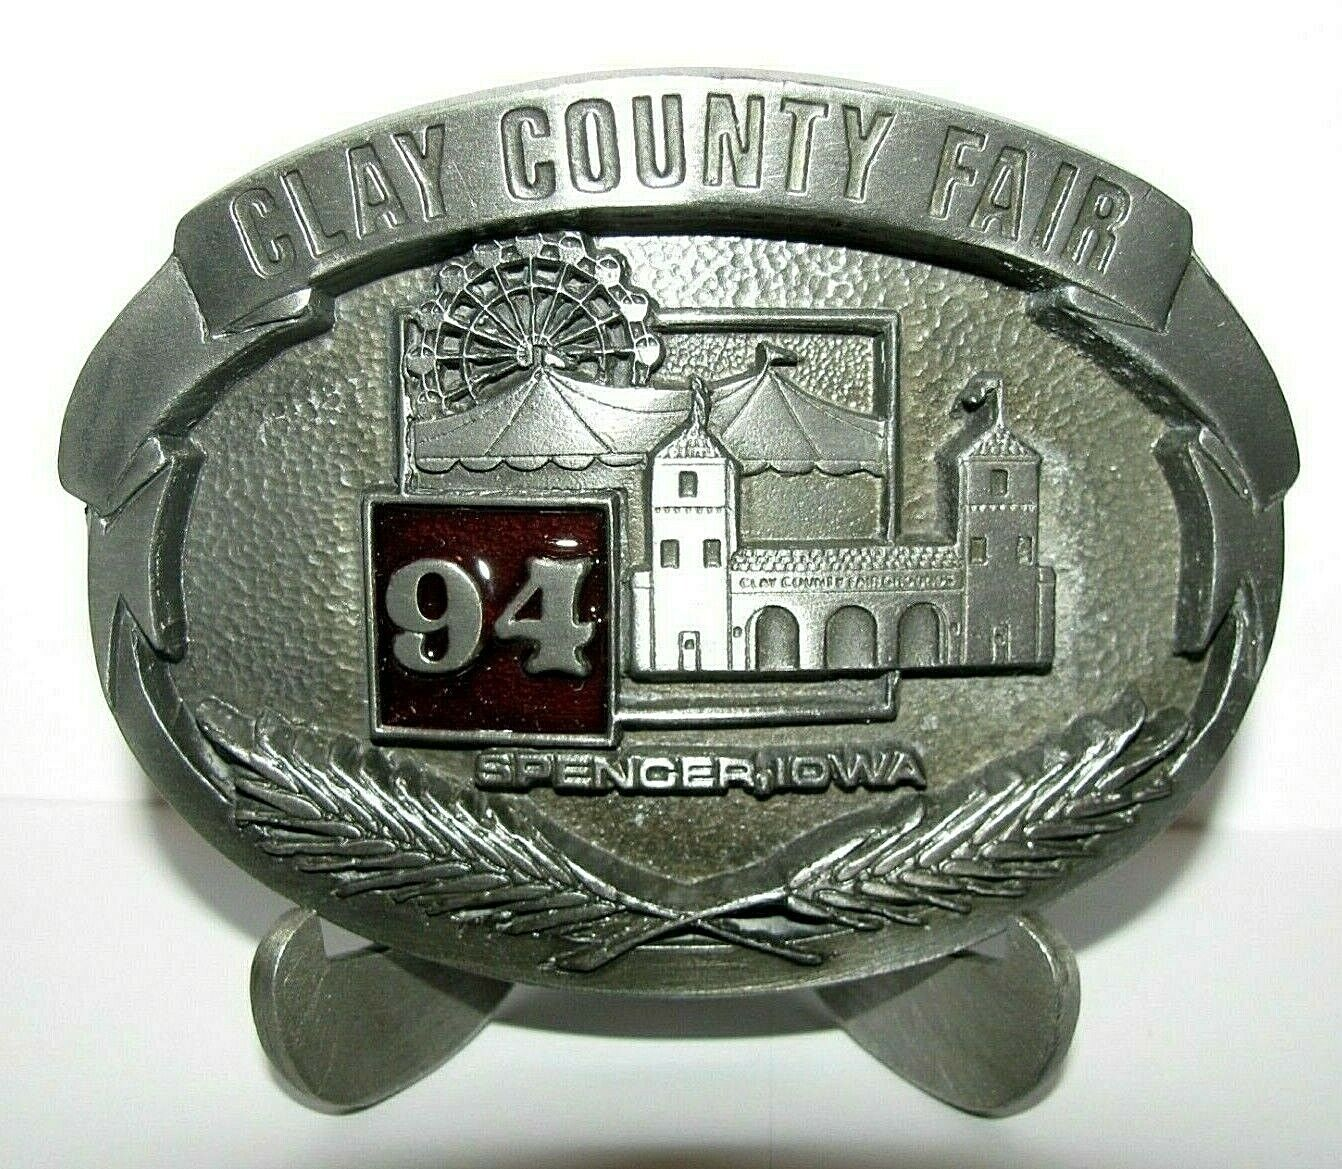 Clay County Fair Spencer Iowa 1994 Pewter Belt Buckle Limited Ed Entertainment